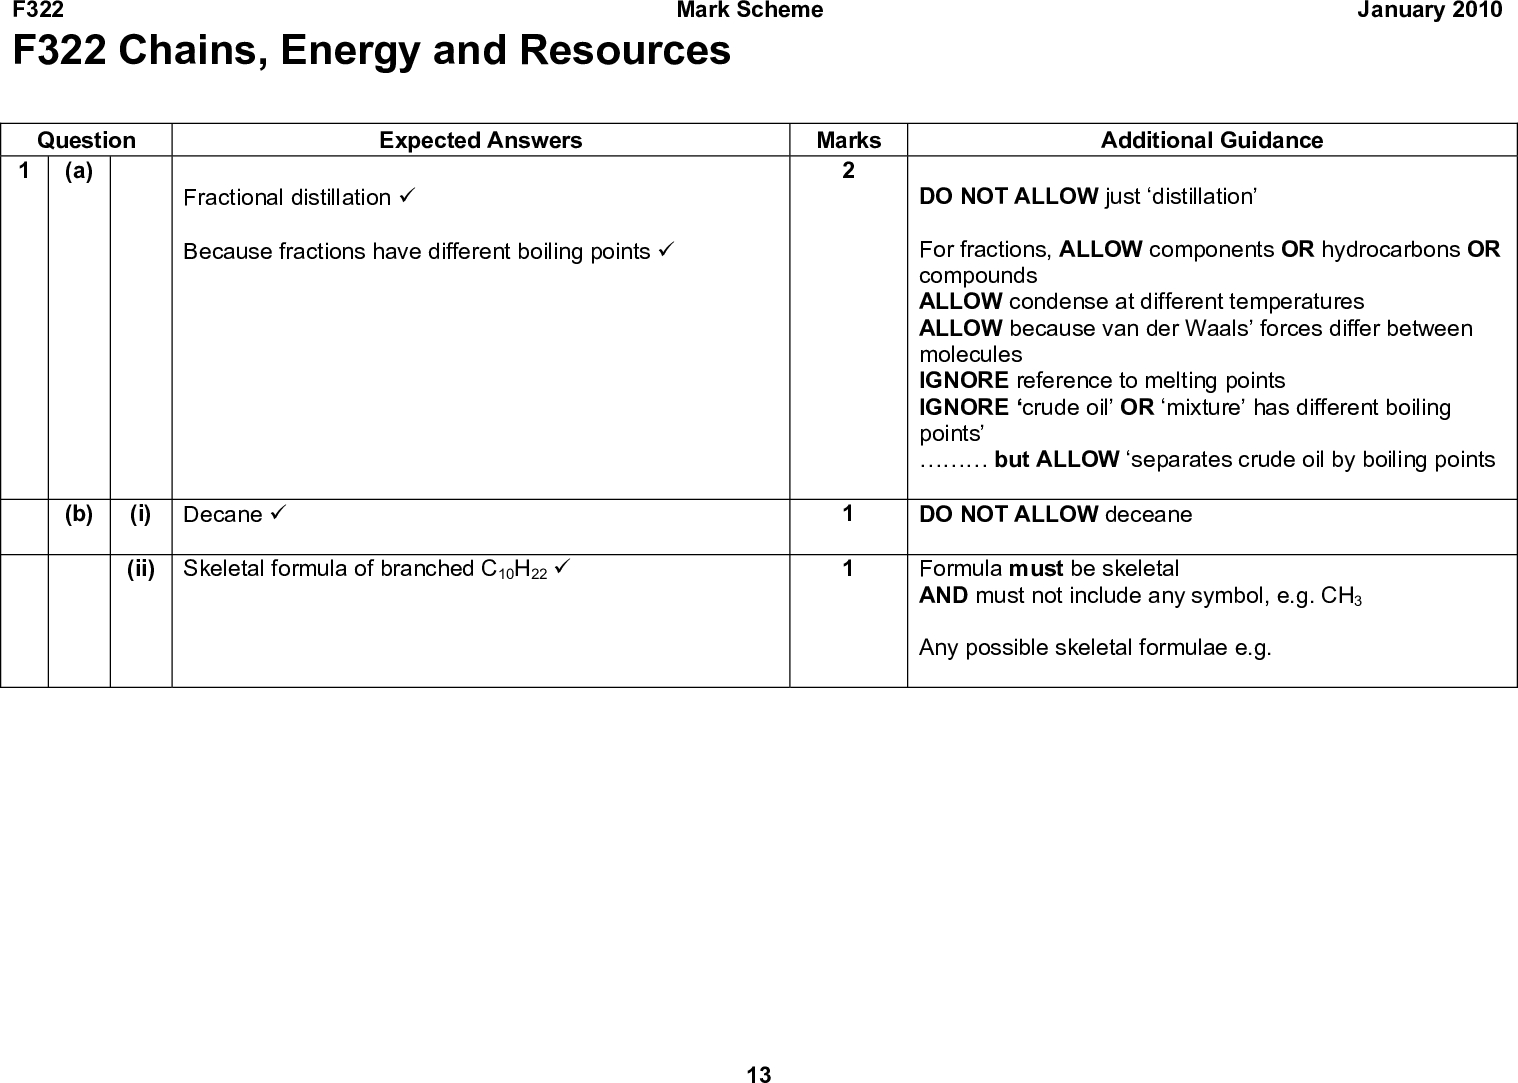 F322 F322 Chains, Energy and Resources Mark Scheme January 2010 Question (a) Expected Answers Fractional distillation (cid:57) Because fractions have different boiling points (cid:57) Marks (b) (i) Decane (cid:57) Skeletal formula of branched C10H22 (cid:57) (ii) Additional Guidance DO NOT ALLOW just distillation For fractions, ALLOW components OR hydrocarbons OR compounds ALLOW condense at different temperatures ALLOW because van der Waals forces differ between molecules IGNORE reference to melting points IGNORE crude oil OR mixture has different boiling pointsbut ALLOW separates crude oil by boiling points DO NOT ALLOW deceane Formula must be skeletal AND must not include any symbol, e.g. CH3 Any possible skeletal formulae e.g. 13<br />  F322 Question Expected Answers Mark Scheme Marks Additional Guidance January 2010 (iii) Decane has more surface contact OR branched chains have less surface contact (cid:57) Decane has more van der Waals forces OR branched chains have fewer van der Waals forces (cid:57) (iv) Branched chains have more efficient combustion OR decane has less efficient combustion (cid:57) 14 Both answers need to be comparisons Assume it refers to decane IGNORE surface area ALLOW straight chains can get closer together OR branched chains cannot get as close to one another IGNORE branched chain are more compact ALLOW Decane has stronger van der Waals forces OR branched chains have weaker van der Waals forces More intermolecular forces is not sufficient ALLOW branched chains are easier to burn OR easier to combust OR burn better OR more efficient fuel OR less likely to produce pre-ignition or knocking OR increases octane rating ALLOW ORA for decane<br />  F322 Question Expected Answers Mark Scheme Marks (c) (i) C10H22 + 15O2 (cid:127)(cid:111) 10CO2 + 11H2O All four species correct (cid:57) balancing of four correct species (cid:57) (ii) N2 + O2 (cid:127)(cid:111) 2NO (cid:57) January 2010 Additional Guidance Better fuel is NOT sufficient Burns more cle